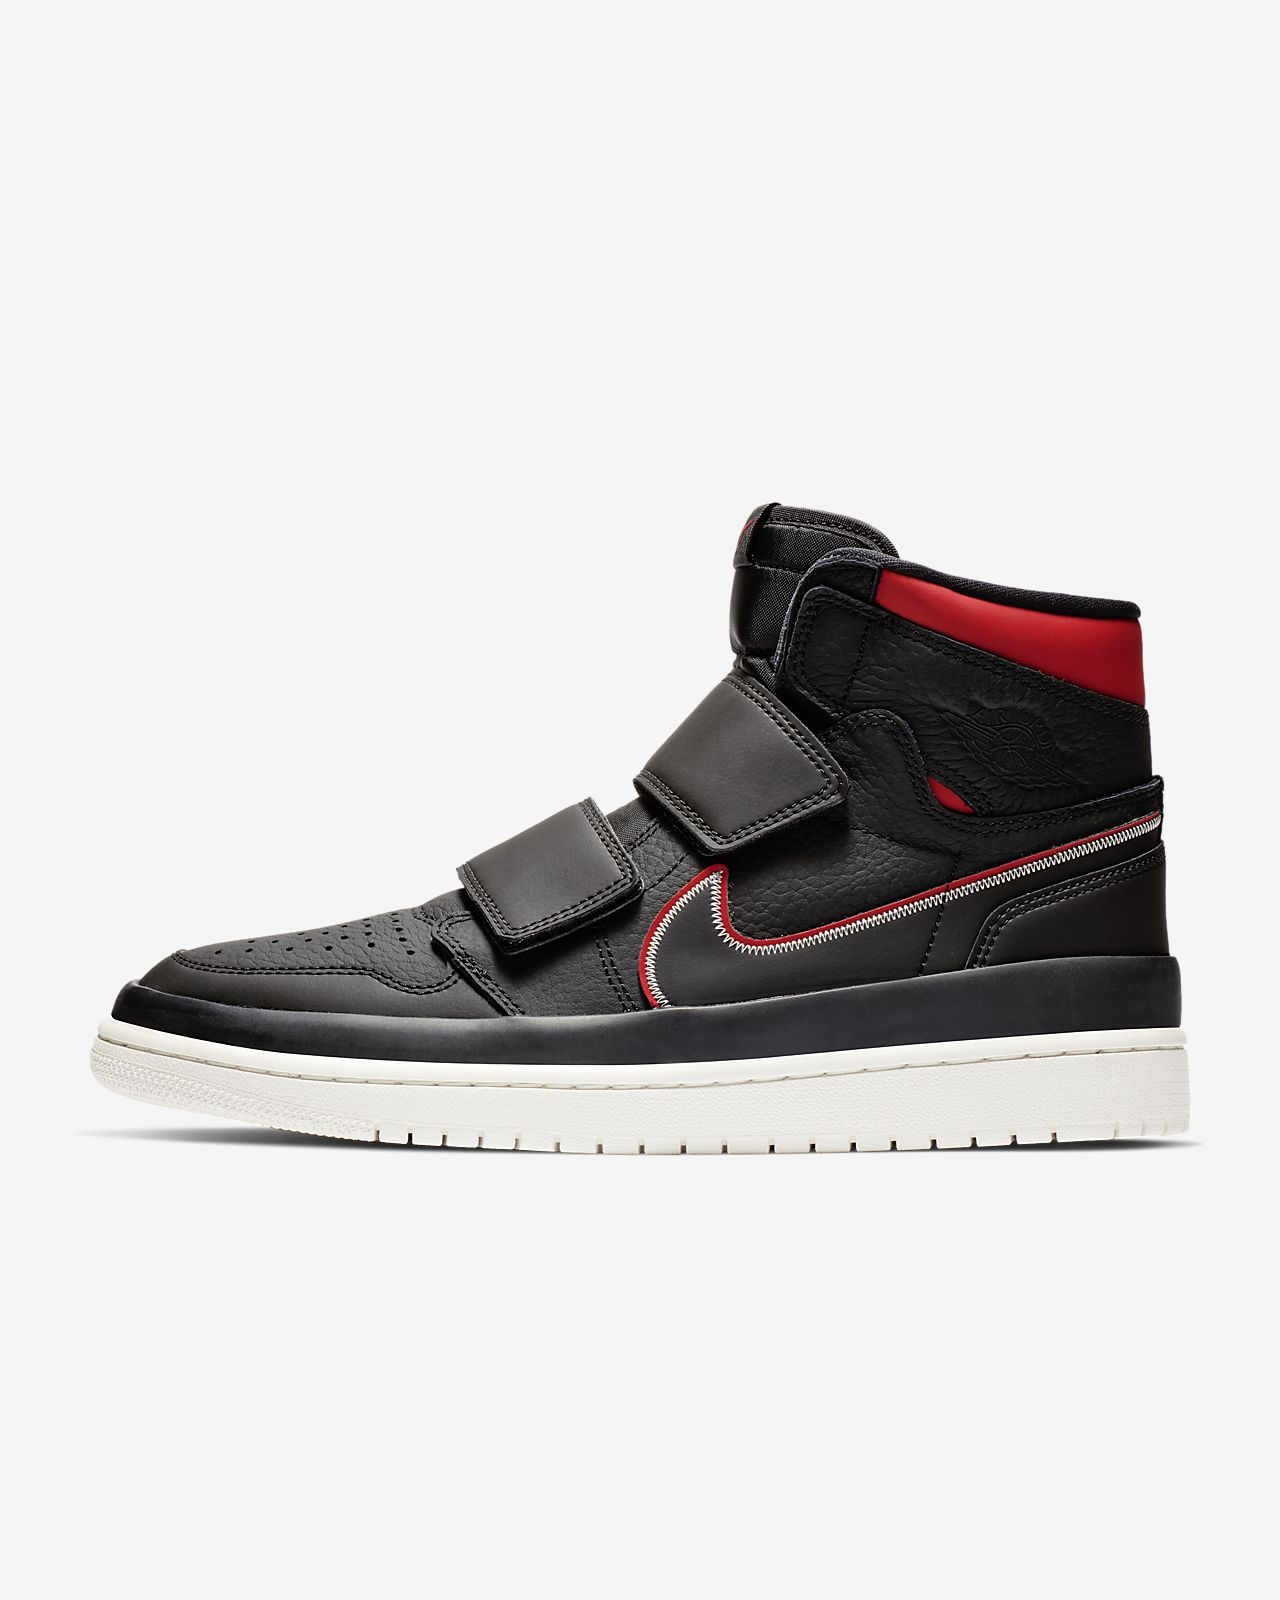 timeless design 98eaf 87f63 Air Jordan 1 Retro High Double Strap Men's Shoe. Nike.com